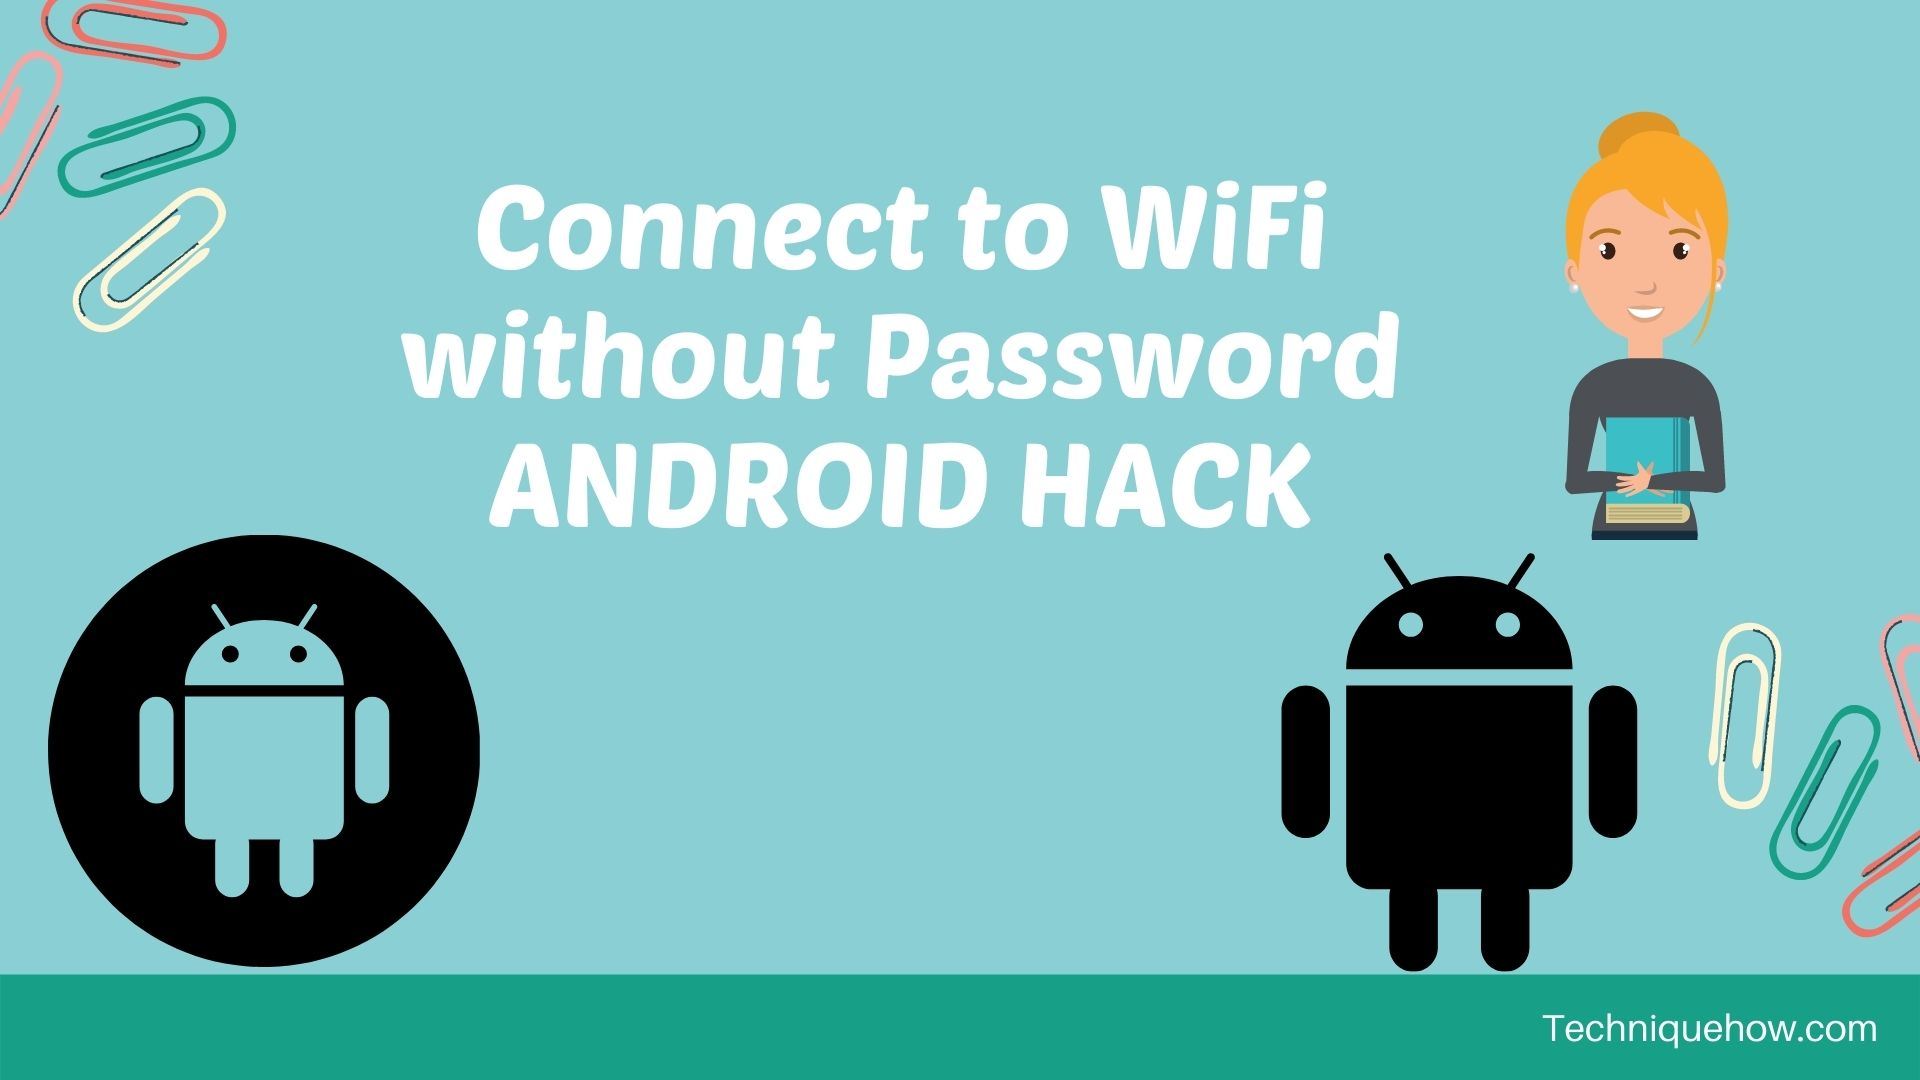 Connect to WiFi without Password ANDROID HACK